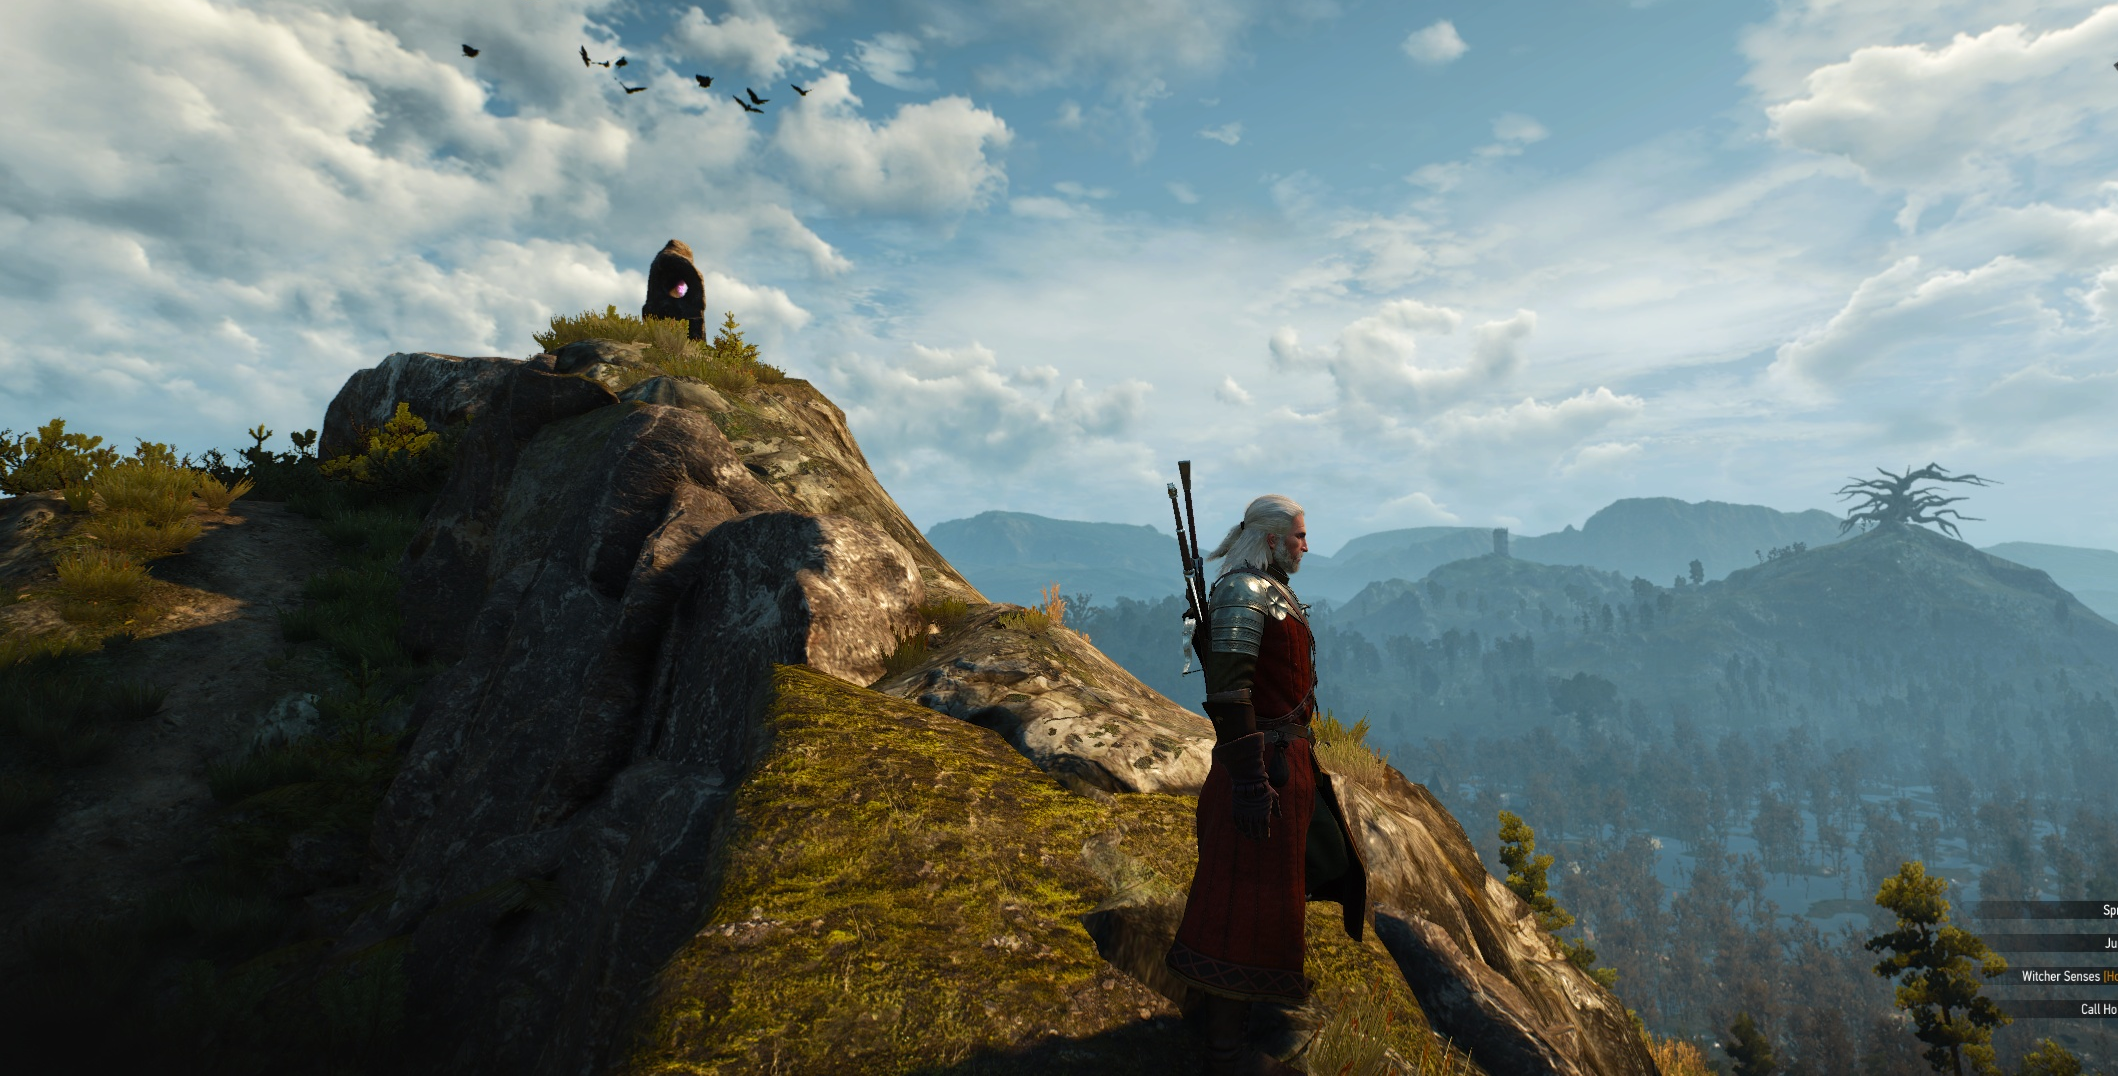 Geralt surveys a landscape in The Witcher 3, where a huge tree is visible on a distant hill